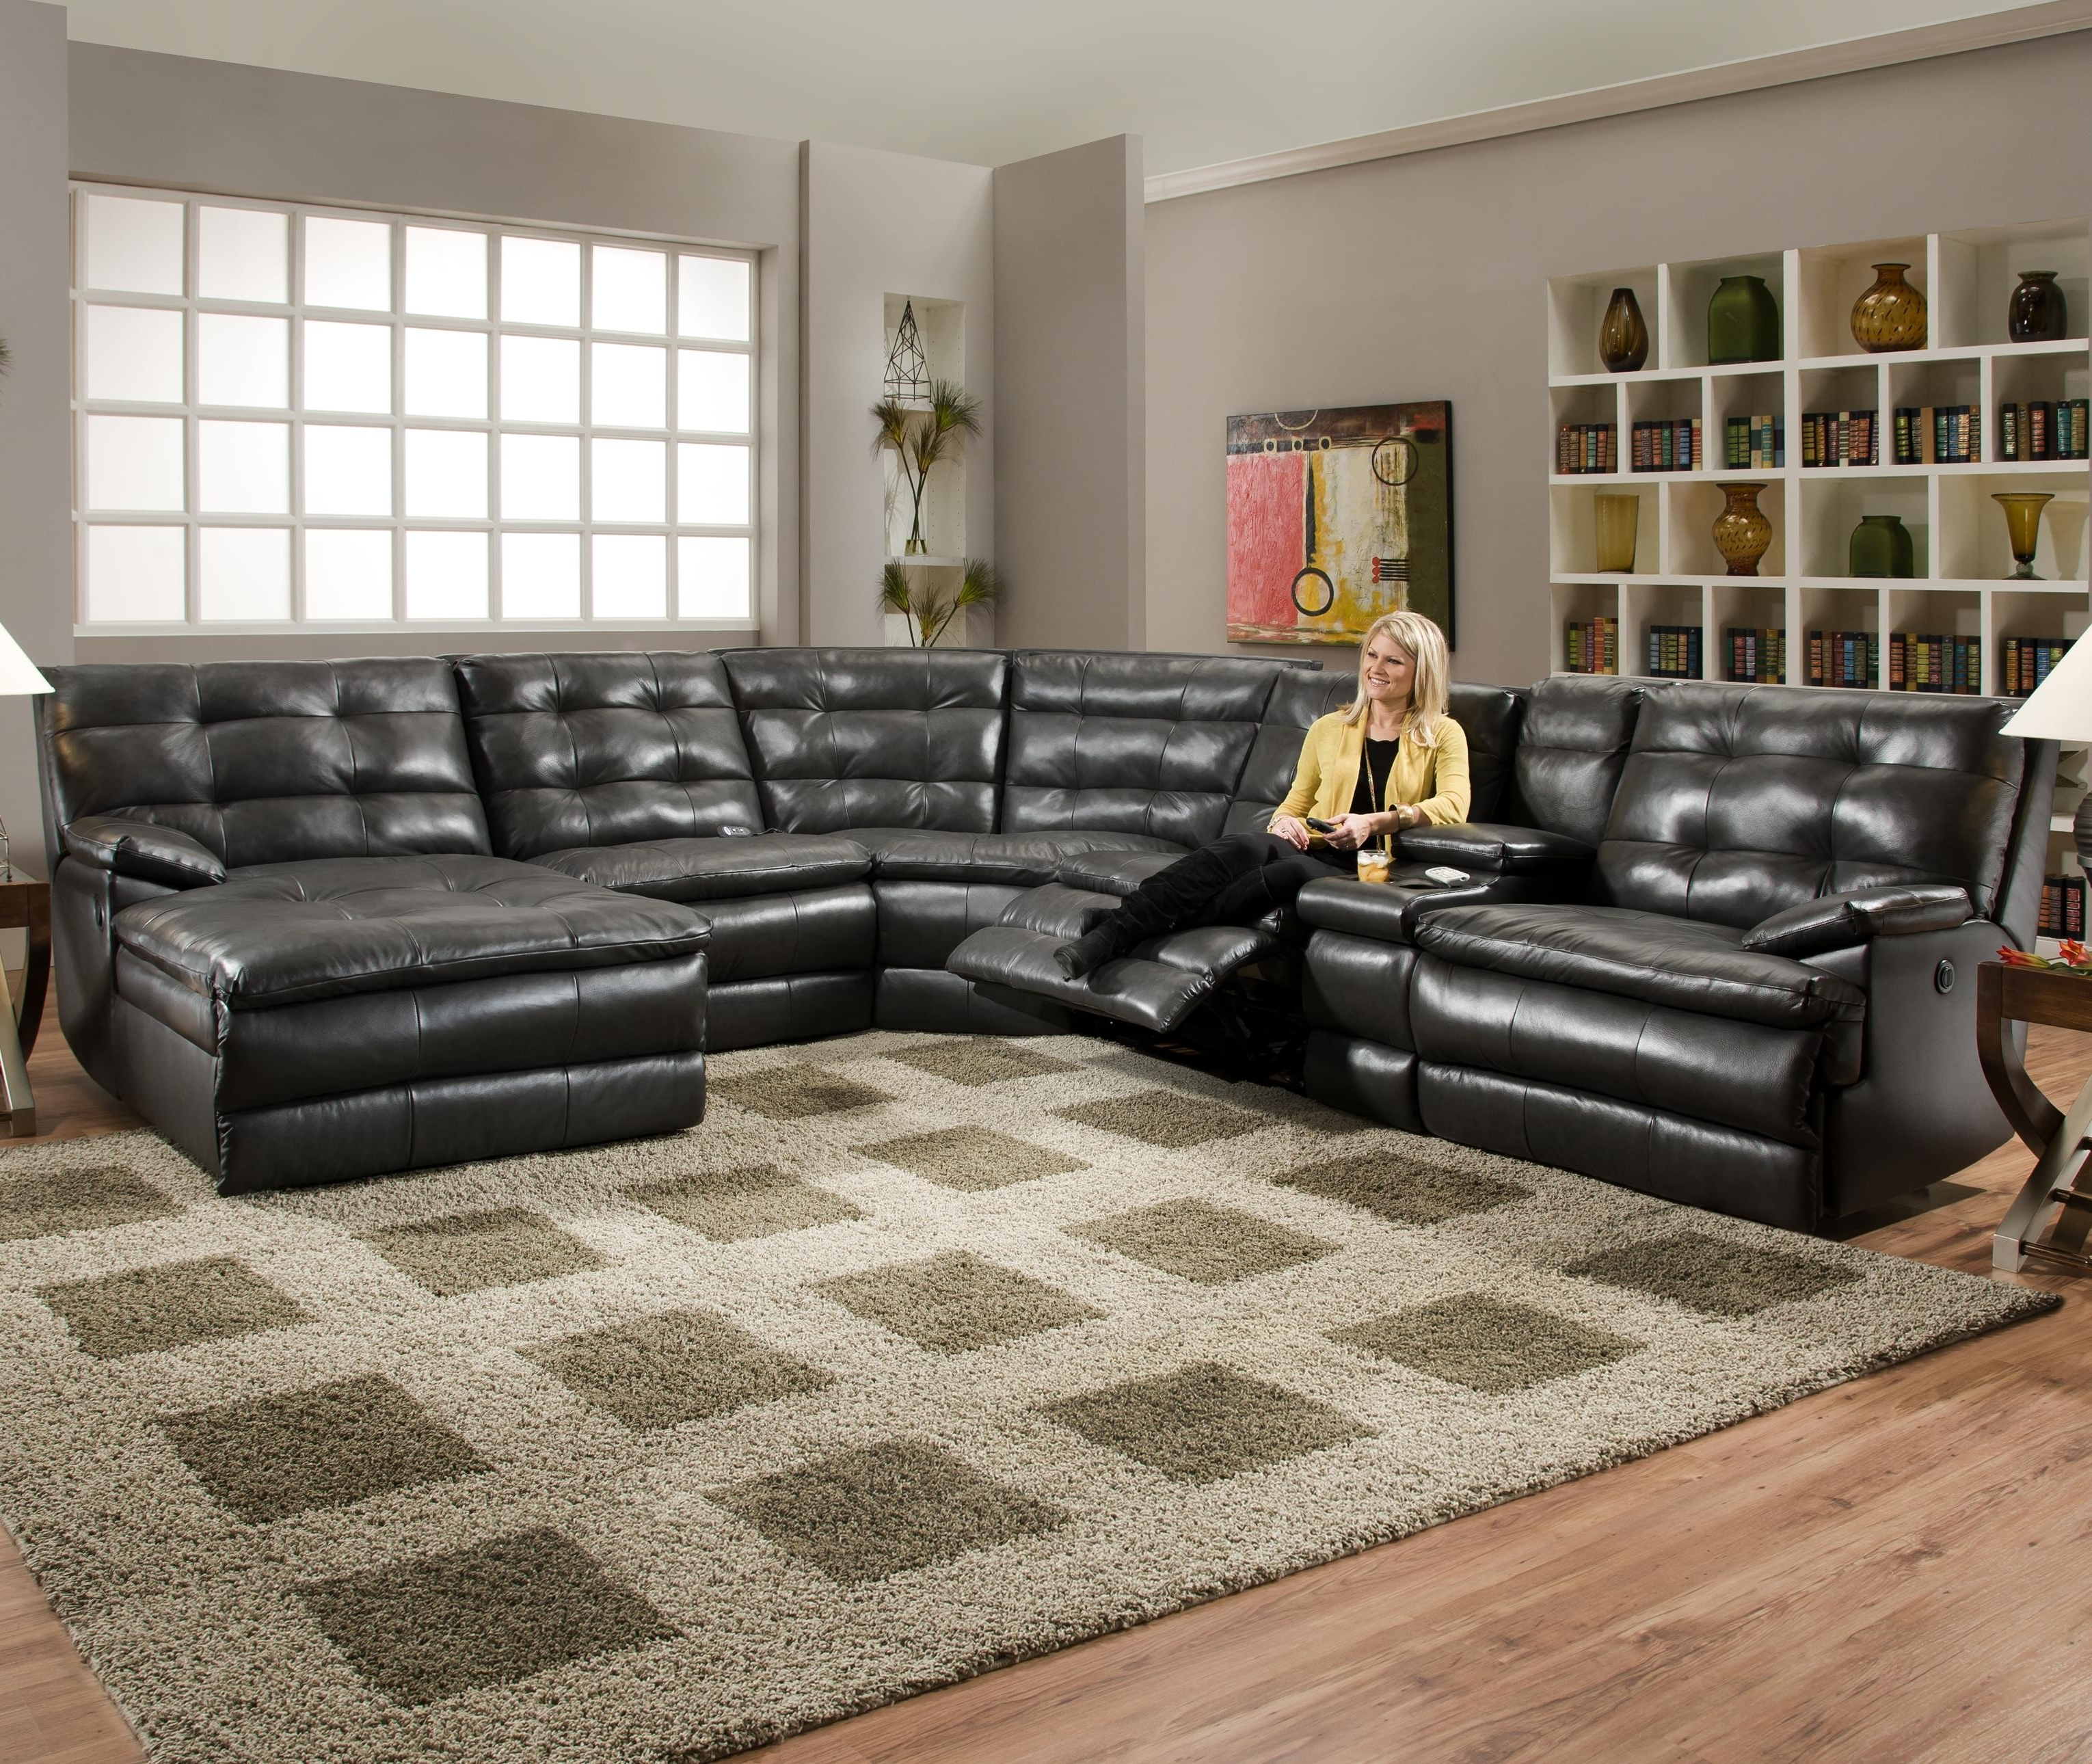 Luxurious Tufted Leather Sectional Sofa In Classy Black Color With Within Well Known Motion Sectional Sofas (View 6 of 15)